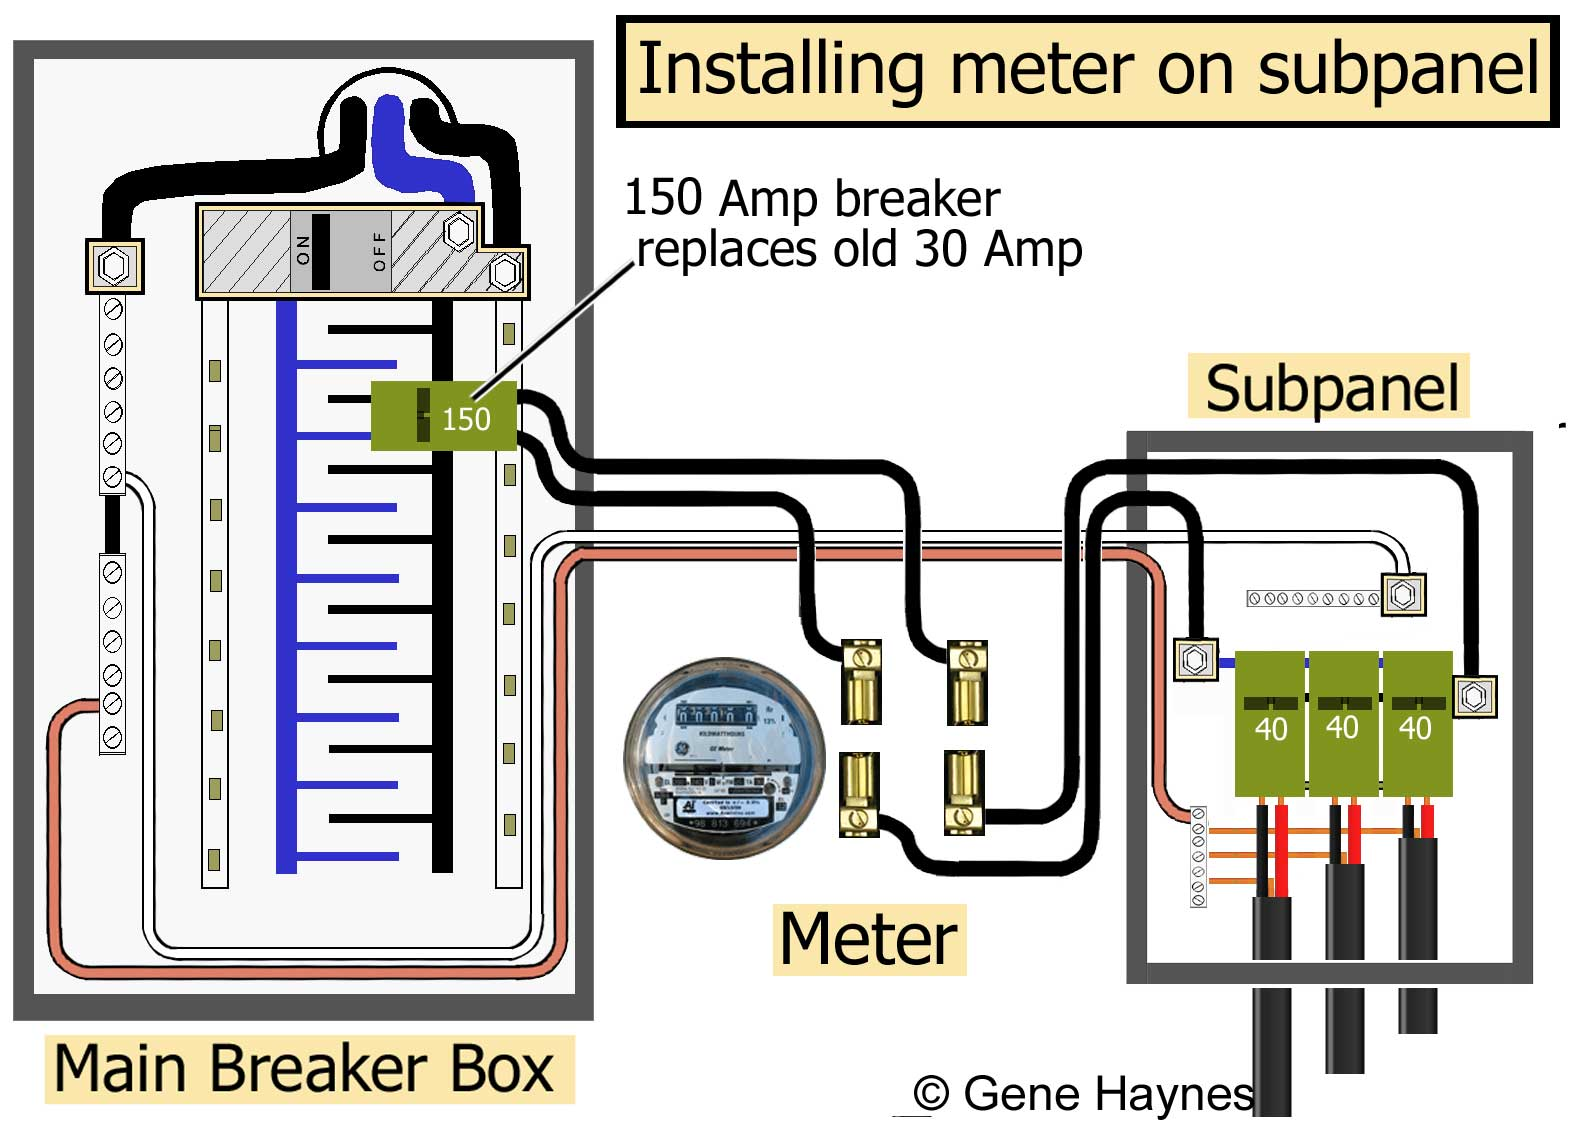 Main subpanel Tankless meter 600 how to wire tankless electric water heater Wiring with 12 3 Wire at virtualis.co